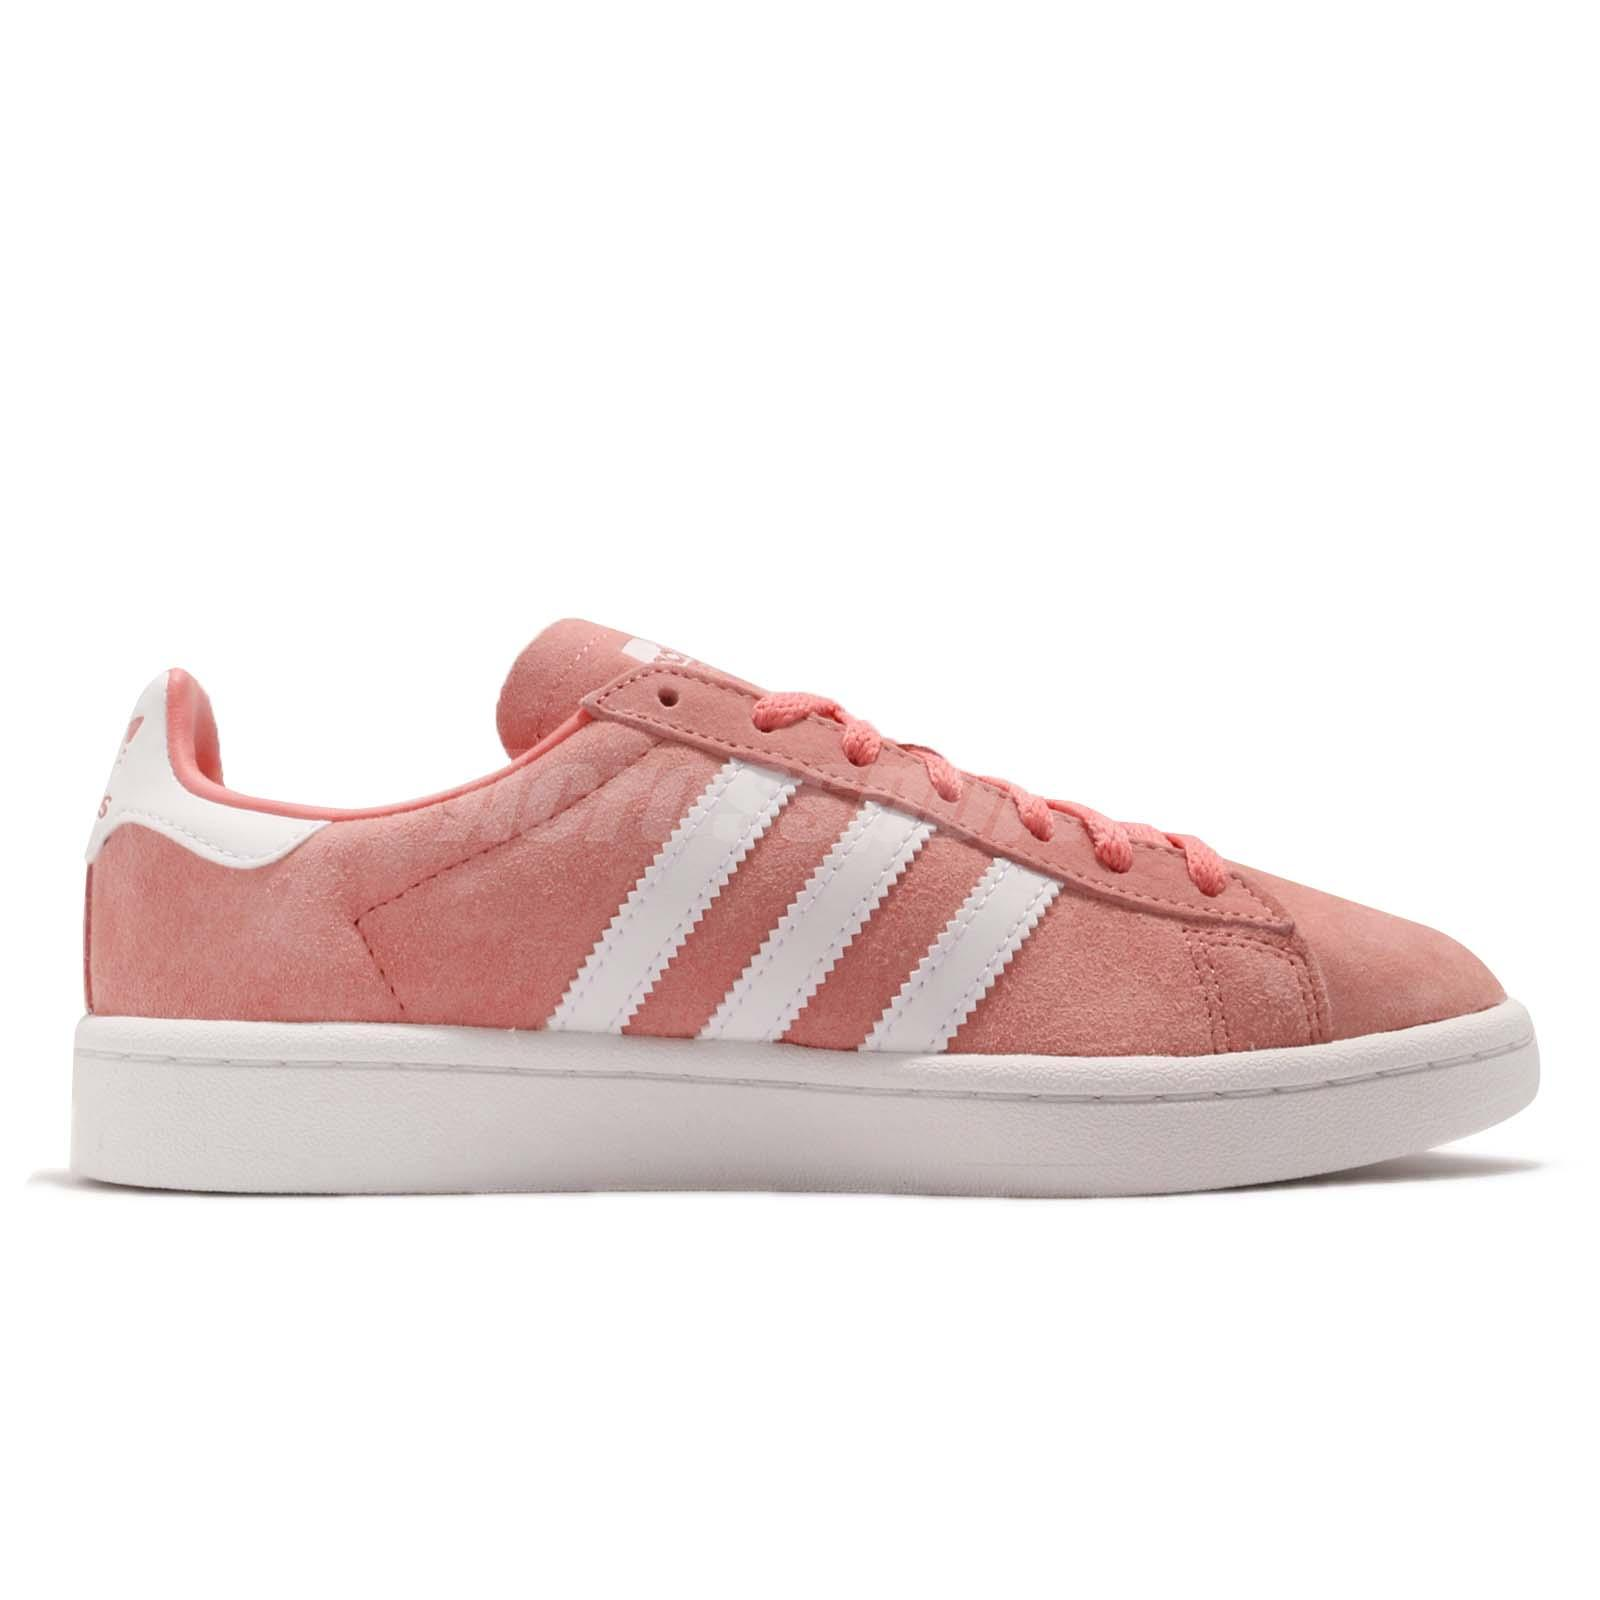 Details about adidas Originals Campus W Tactile Rose White Women Casual  Shoes Sneakers B41939